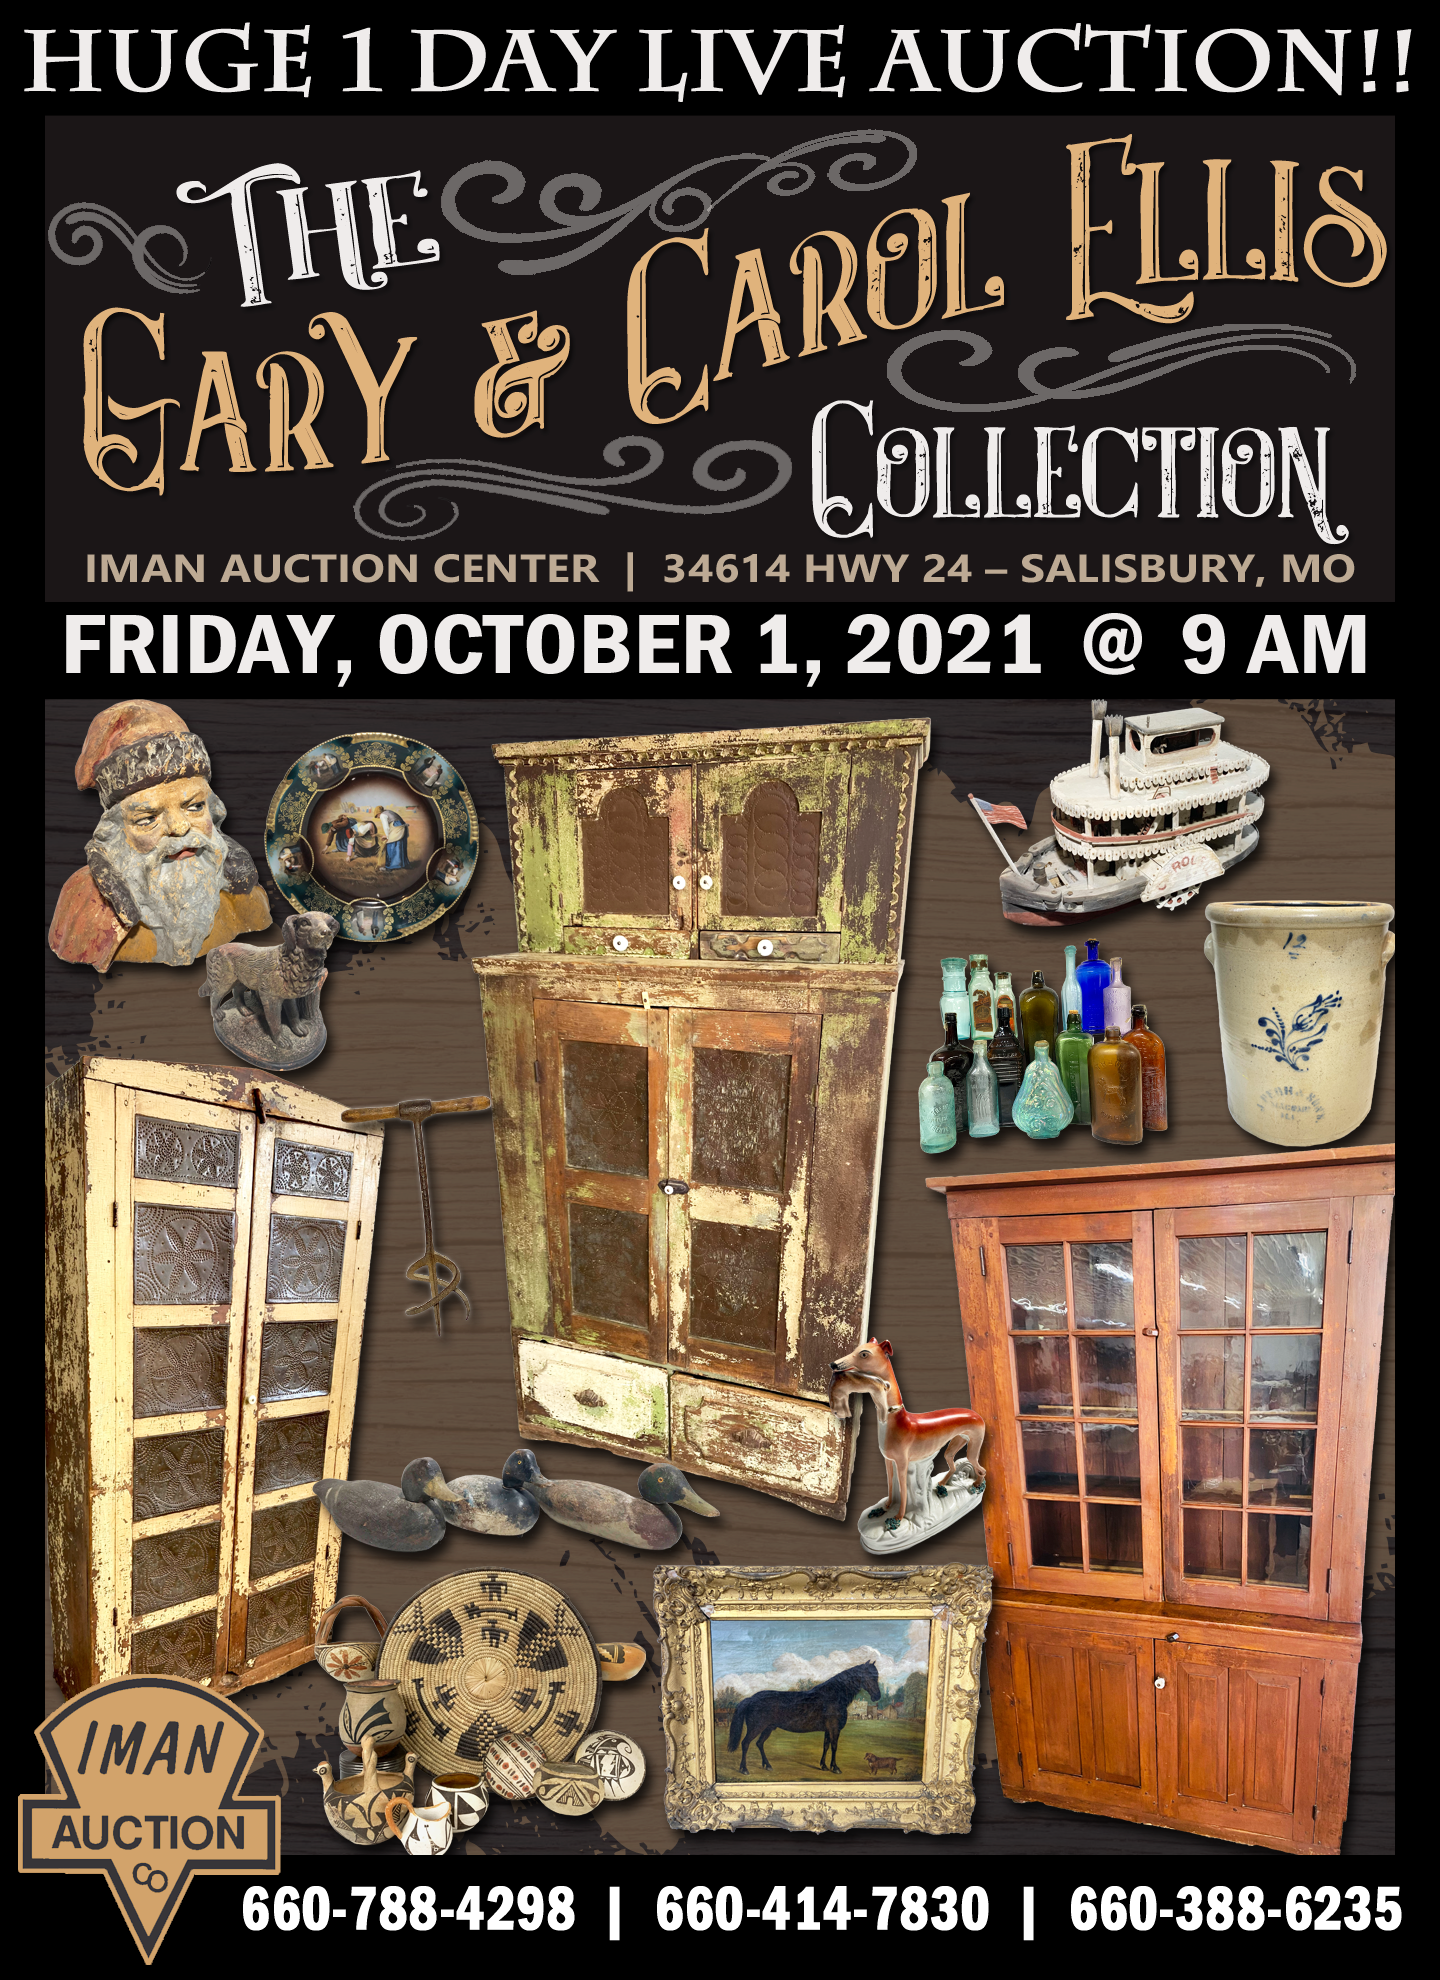 THE GARY AND CAROL ELLIS COLLECTION